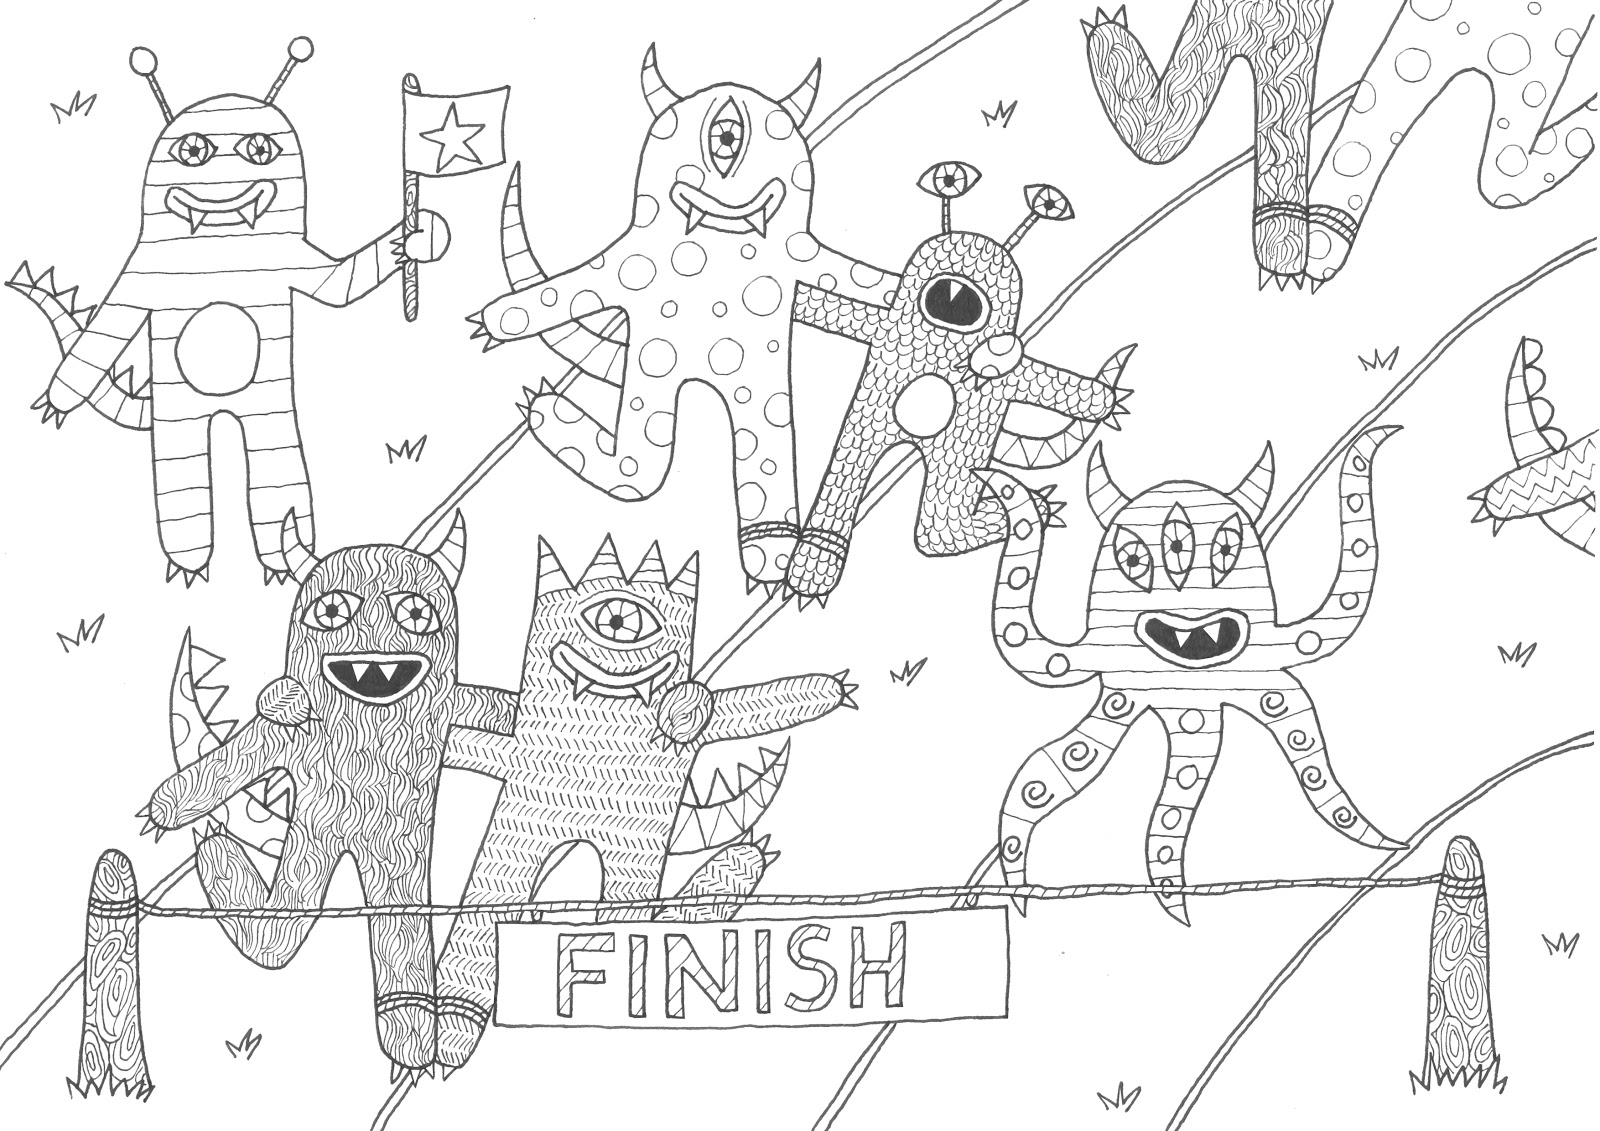 sports day colouring sports coloring pages painting drawing colouring day sports